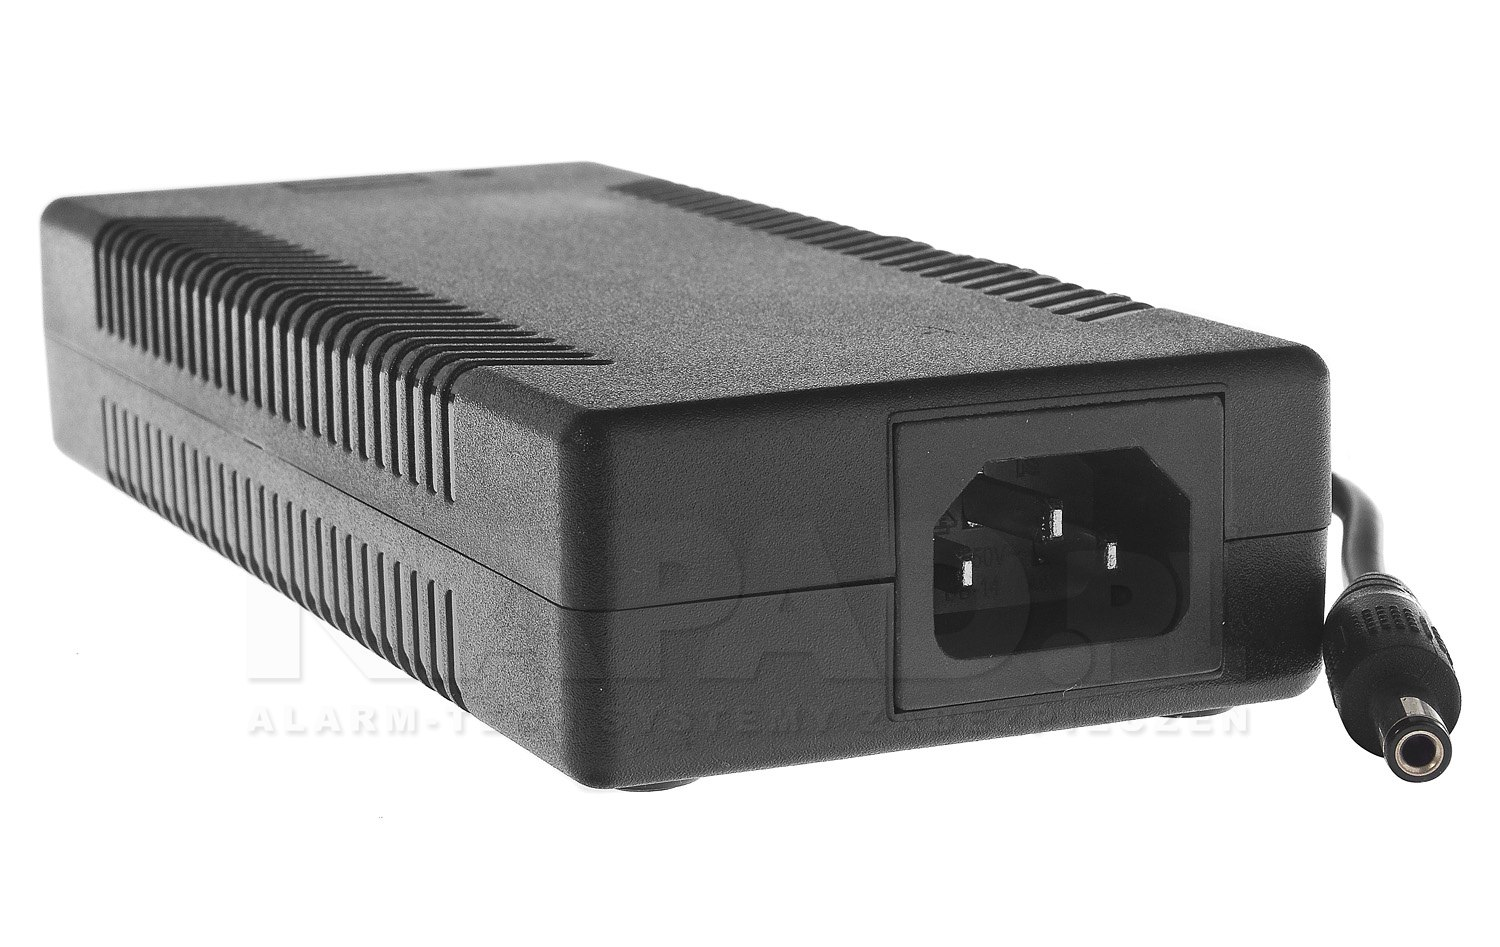 Zasilacz impulsowy do switchy PoE 150W